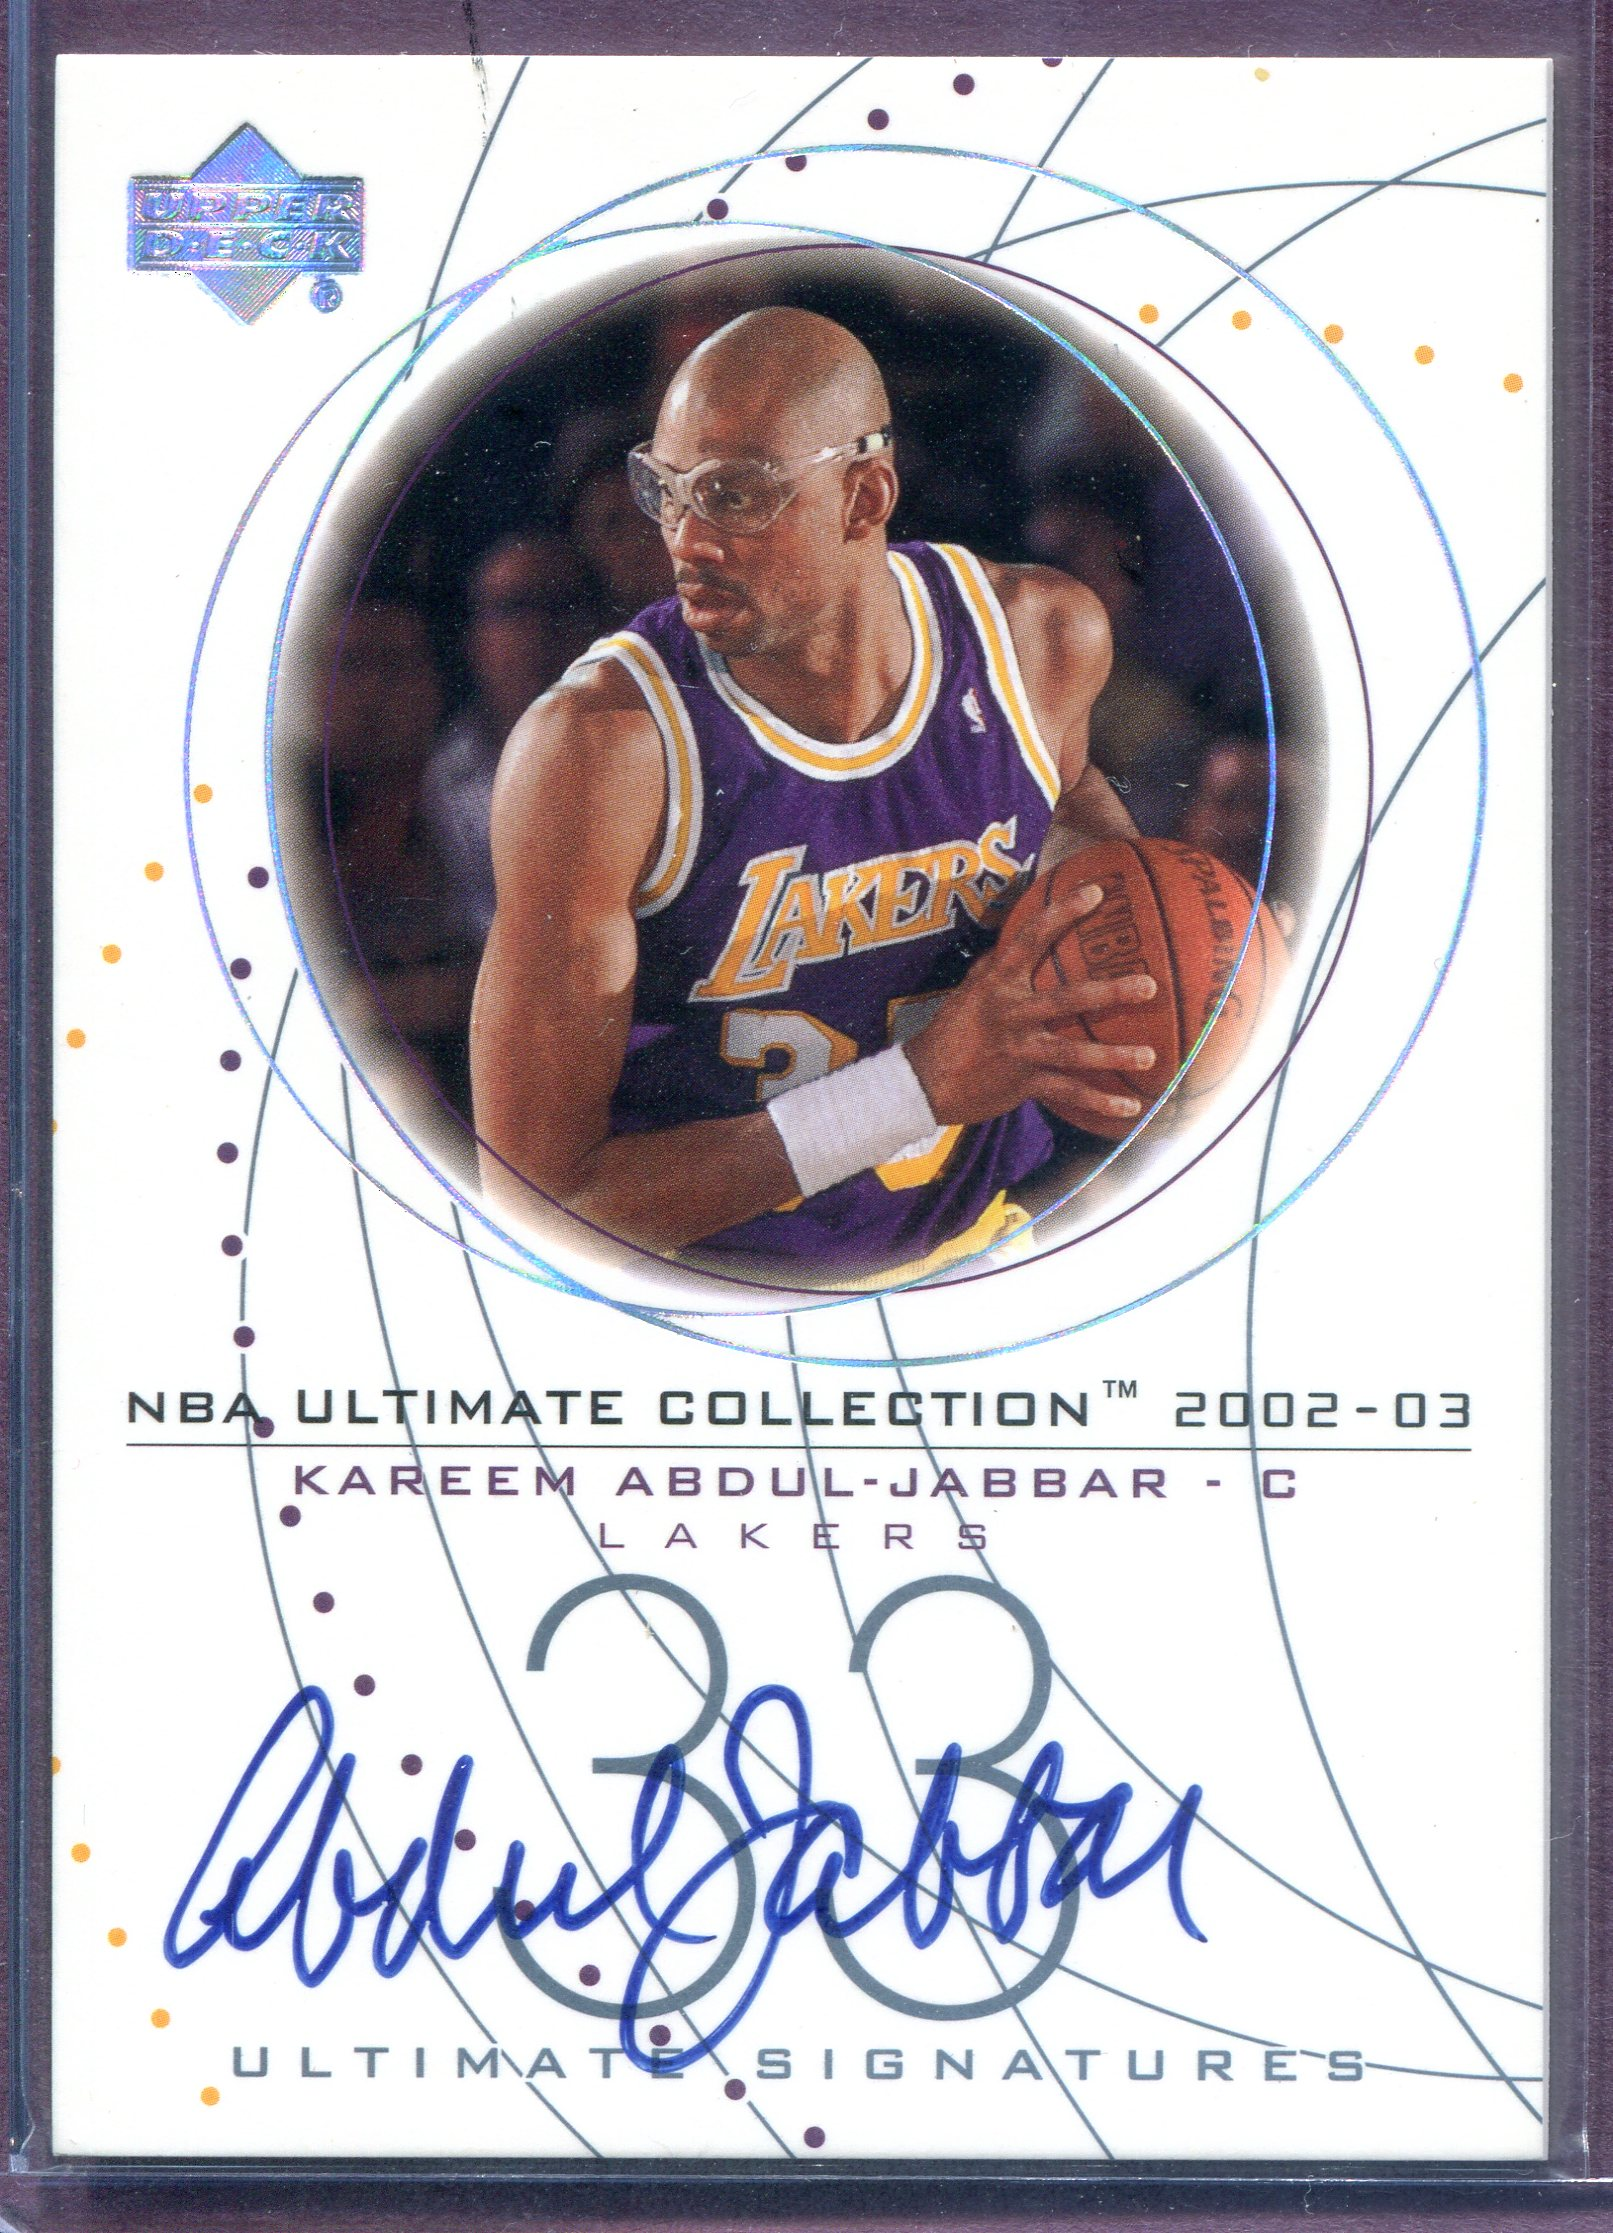 2002-03 Ultimate Collection Signatures #KAS Kareem Abdul-Jabbar